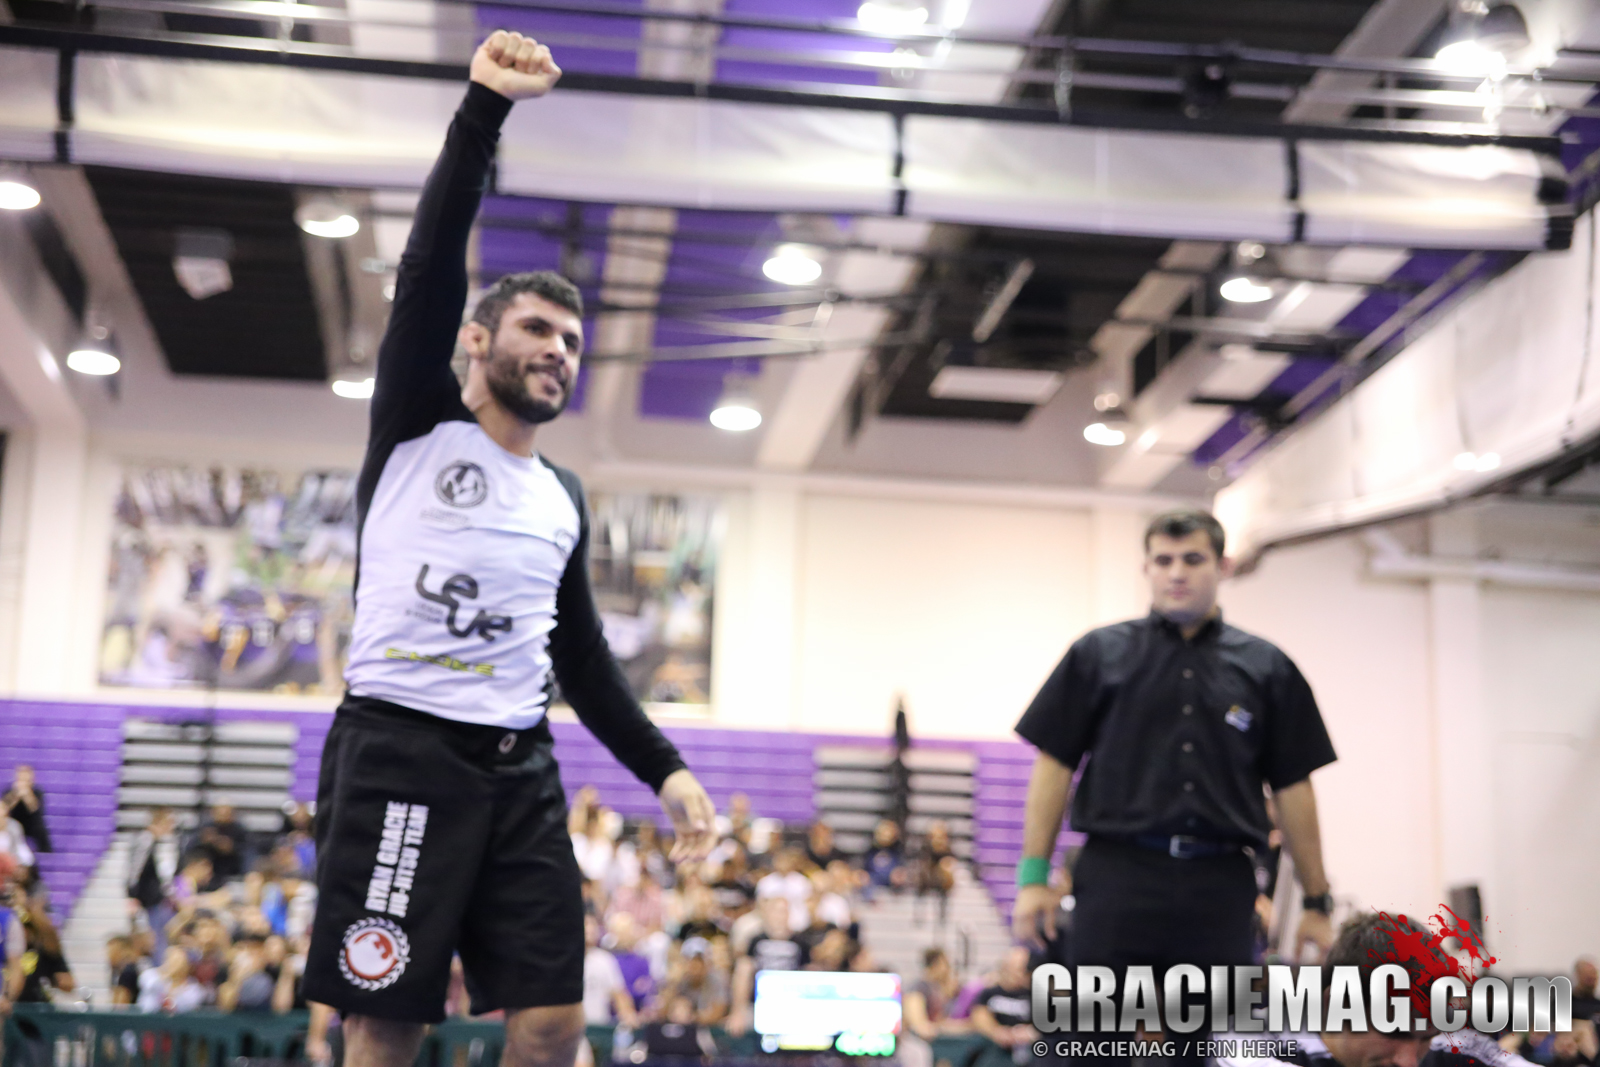 Claudio Cardoso celebrates his win. Photo: Erin Herle